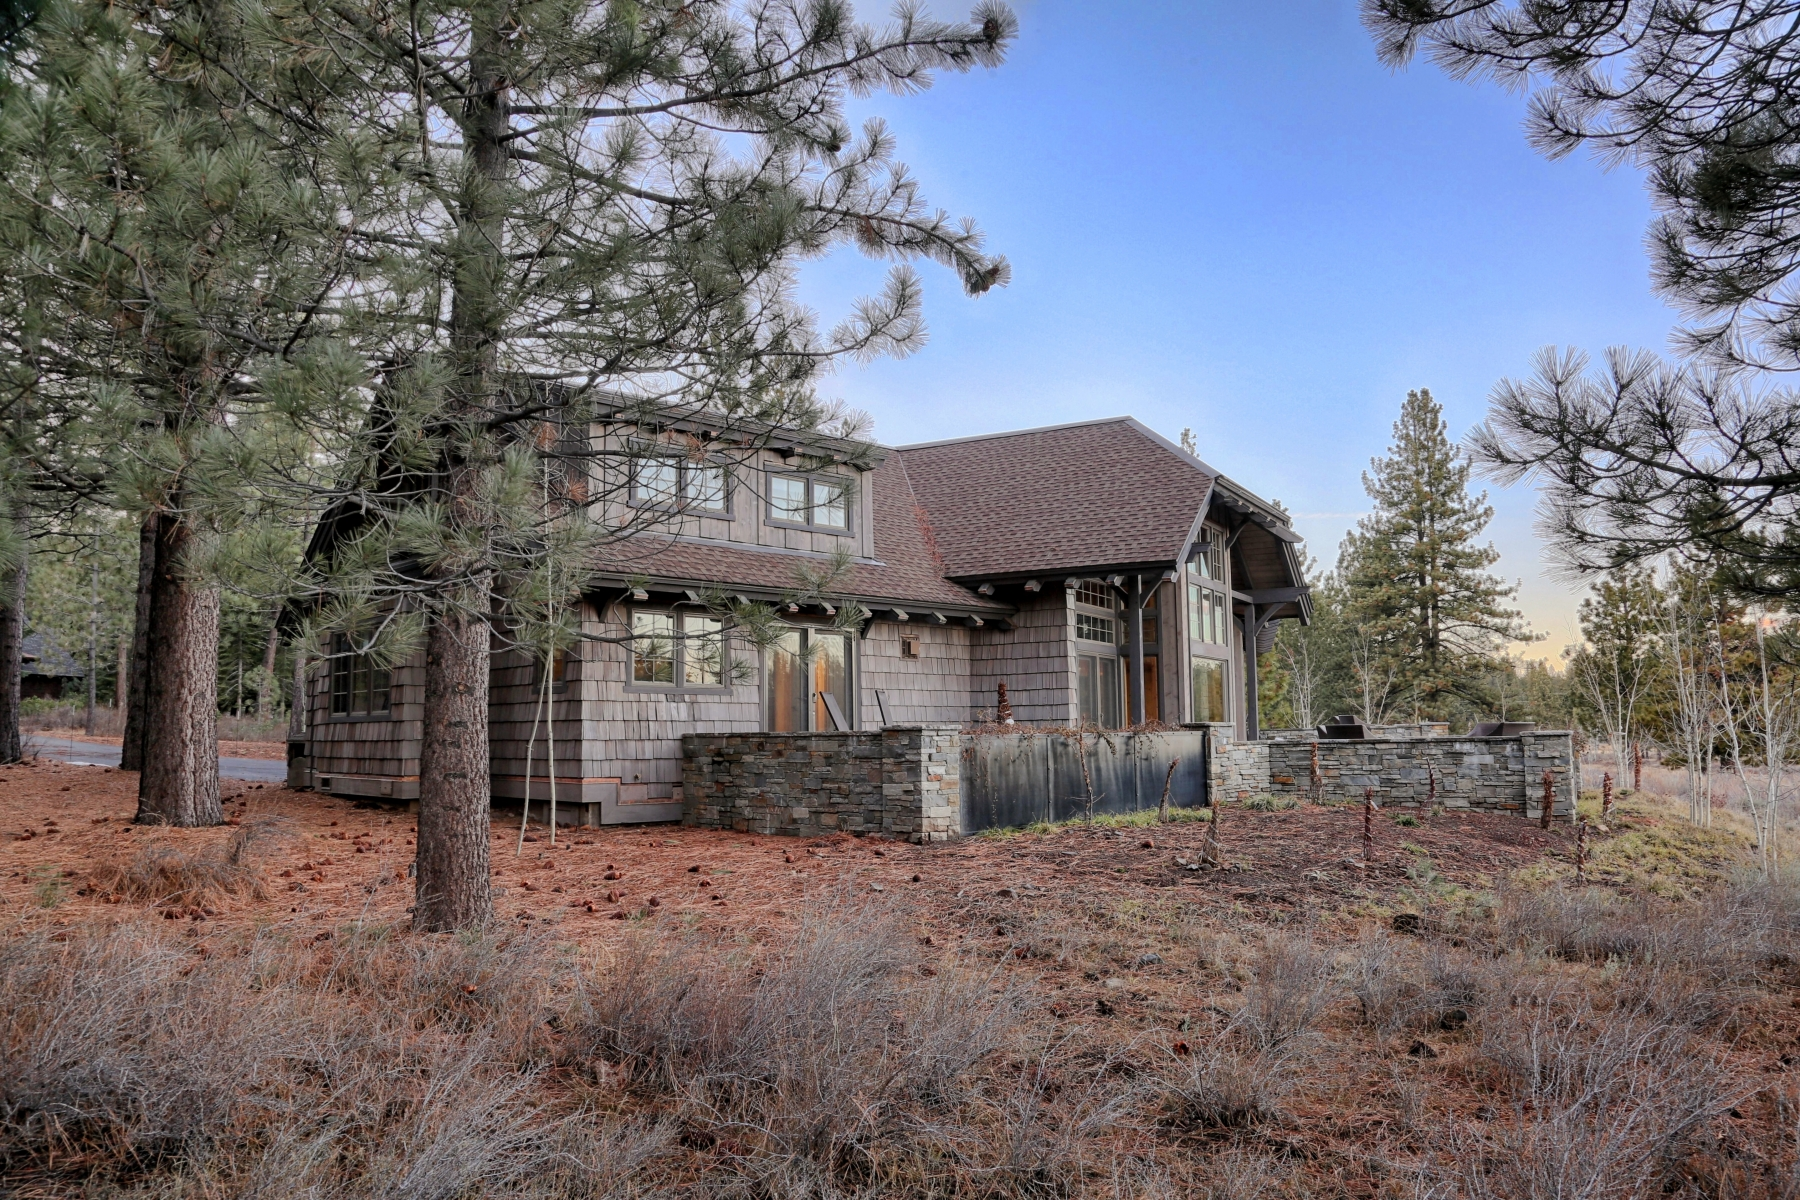 Additional photo for property listing at 930 Paul Doyle, Truckee, CA 96161 930 Paul Doyle Truckee, California 96161 United States